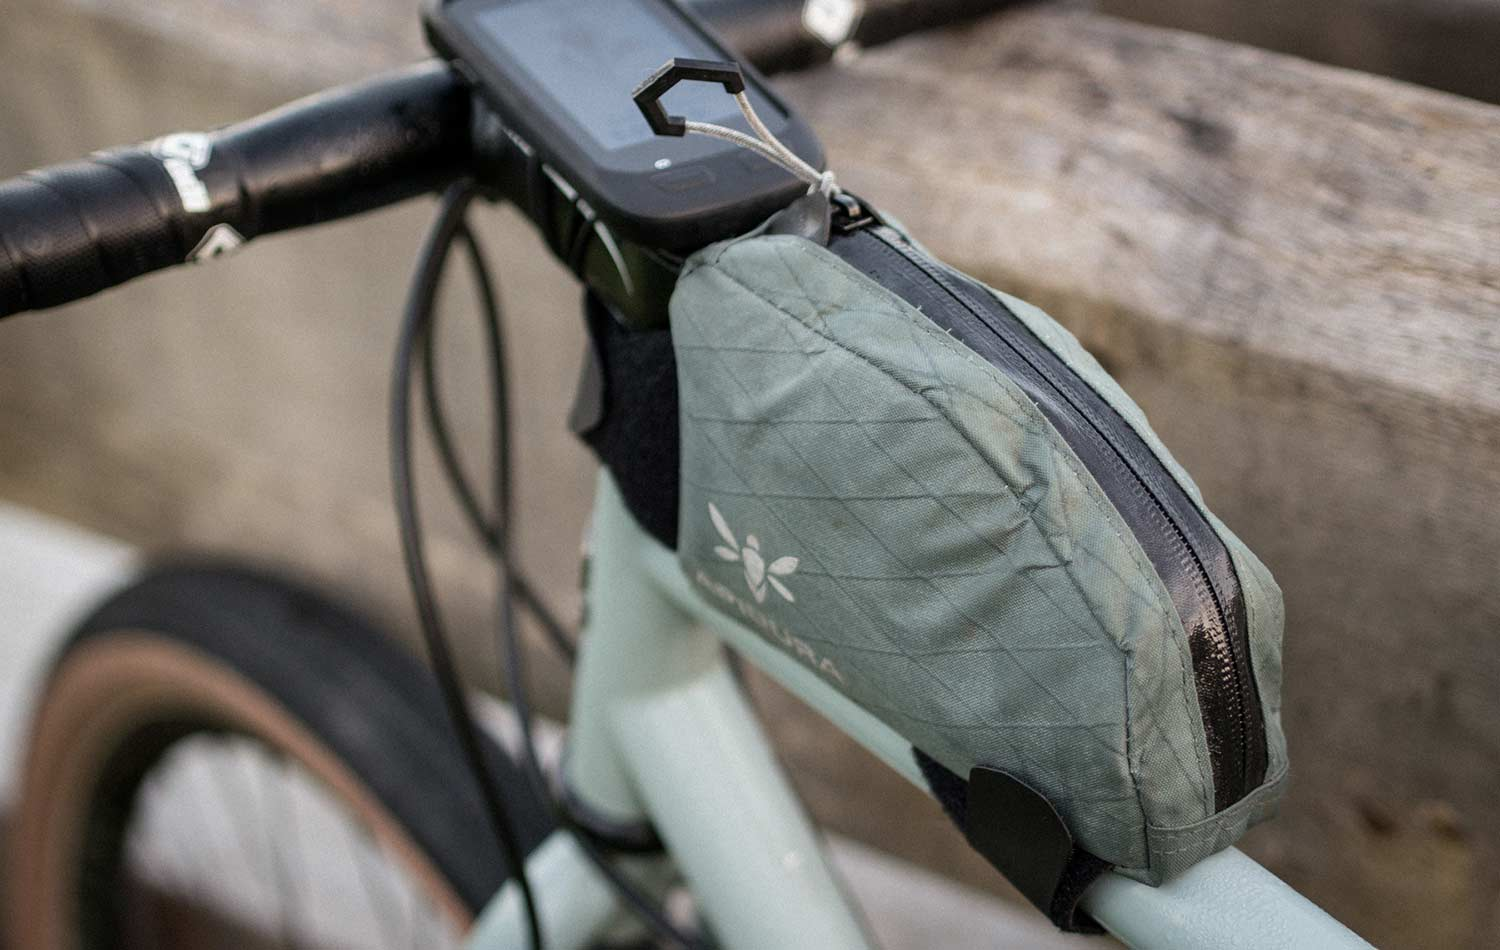 how to use strava apidura guide